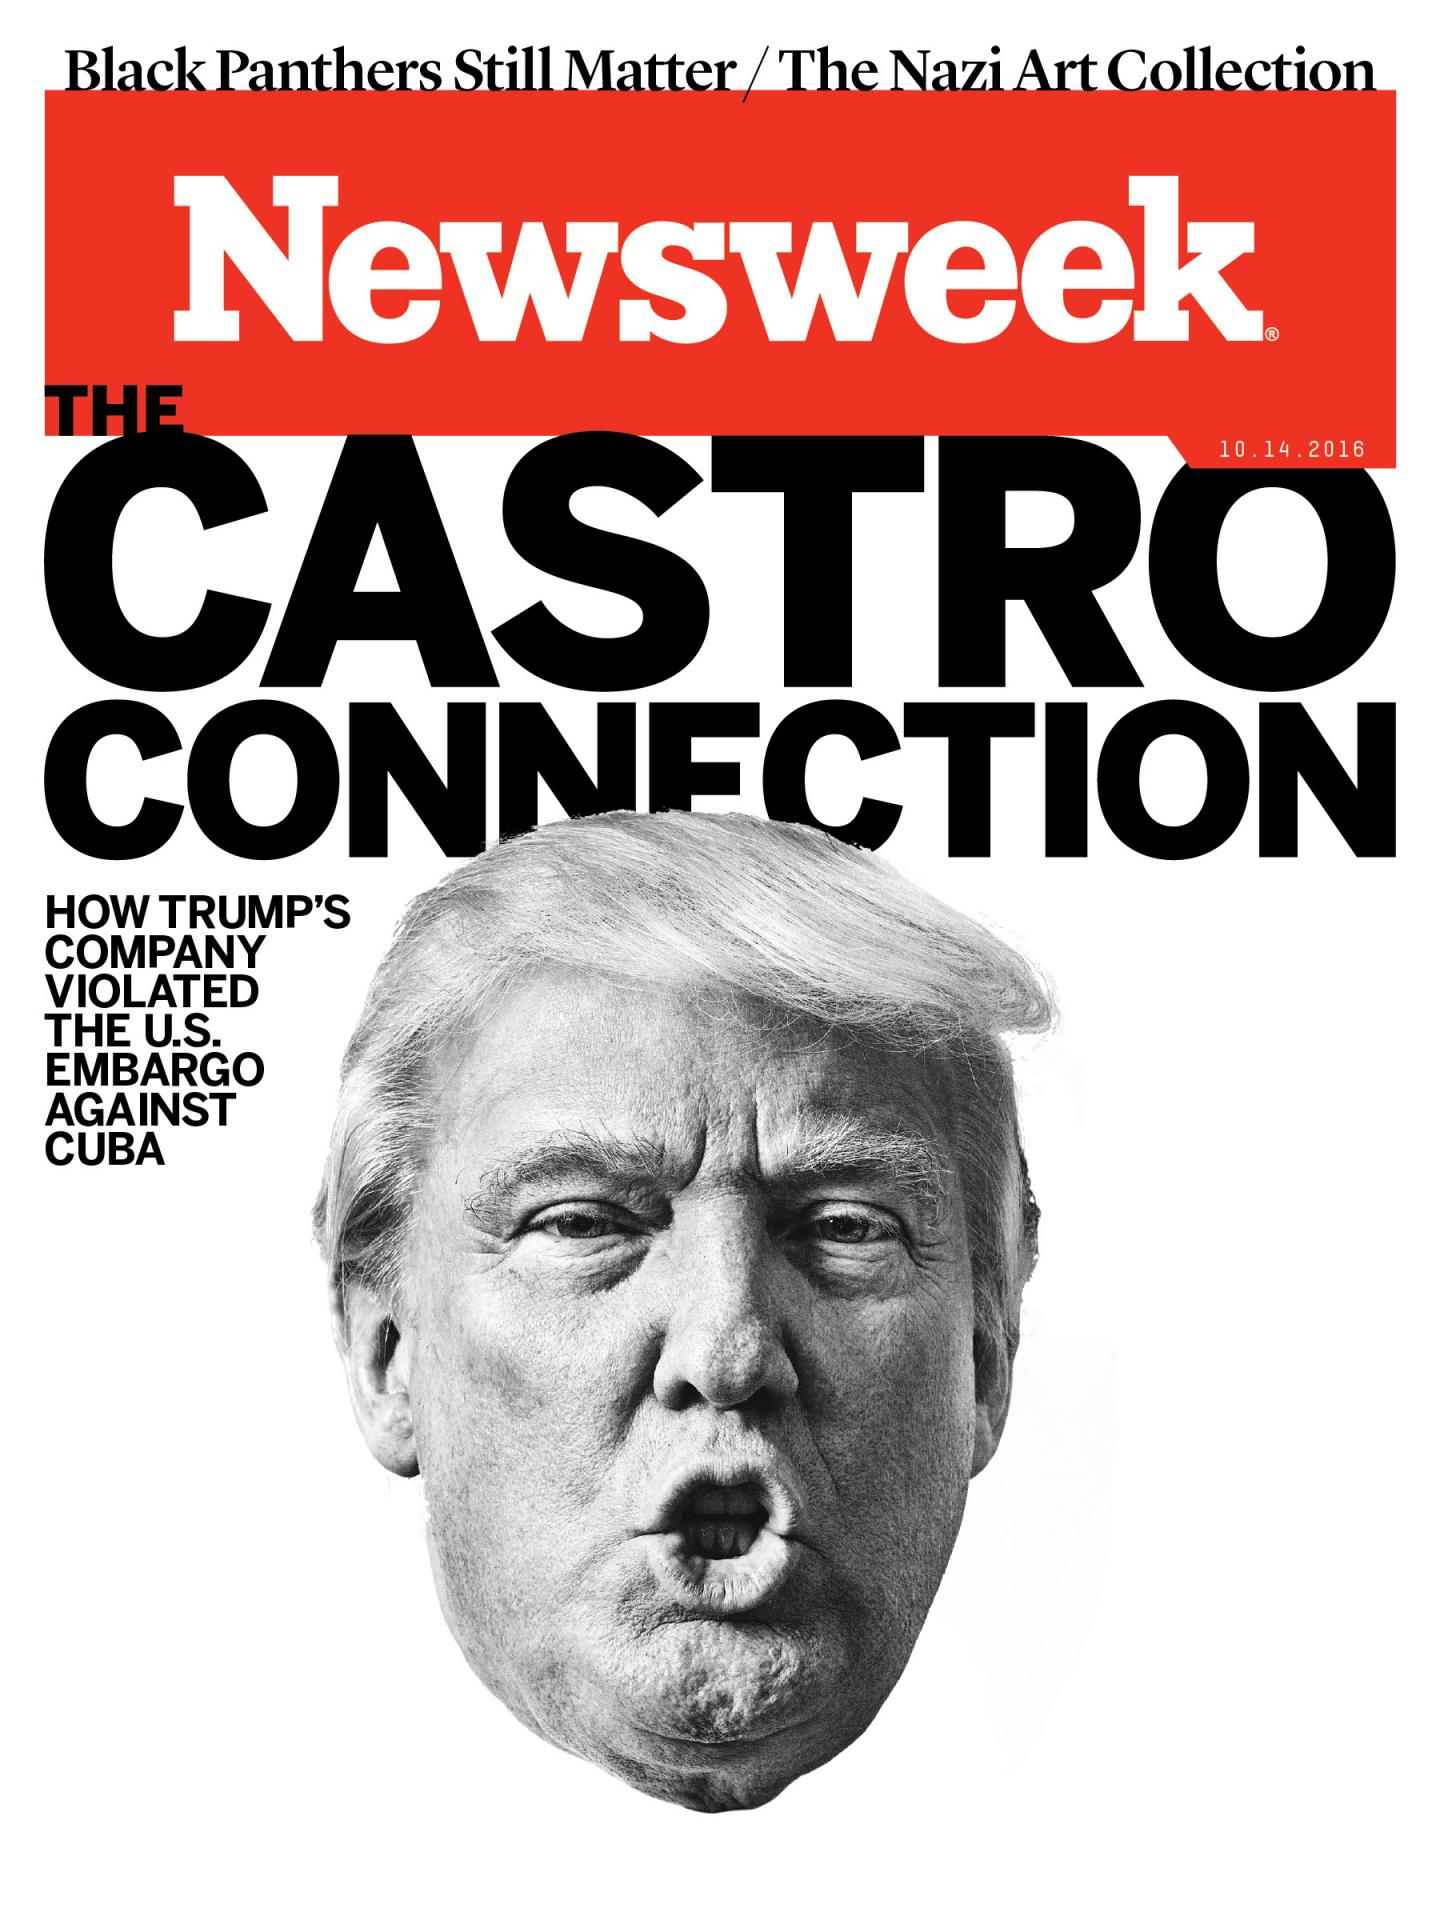 "Newsweek reported Thursday that ""A company controlled by Donald Trump, the Republican nominee for president, secretly conducted business in Communist Cuba during Fidel Castro's presidency despite strict American trade bans that made such undertakings illegal. . ."""